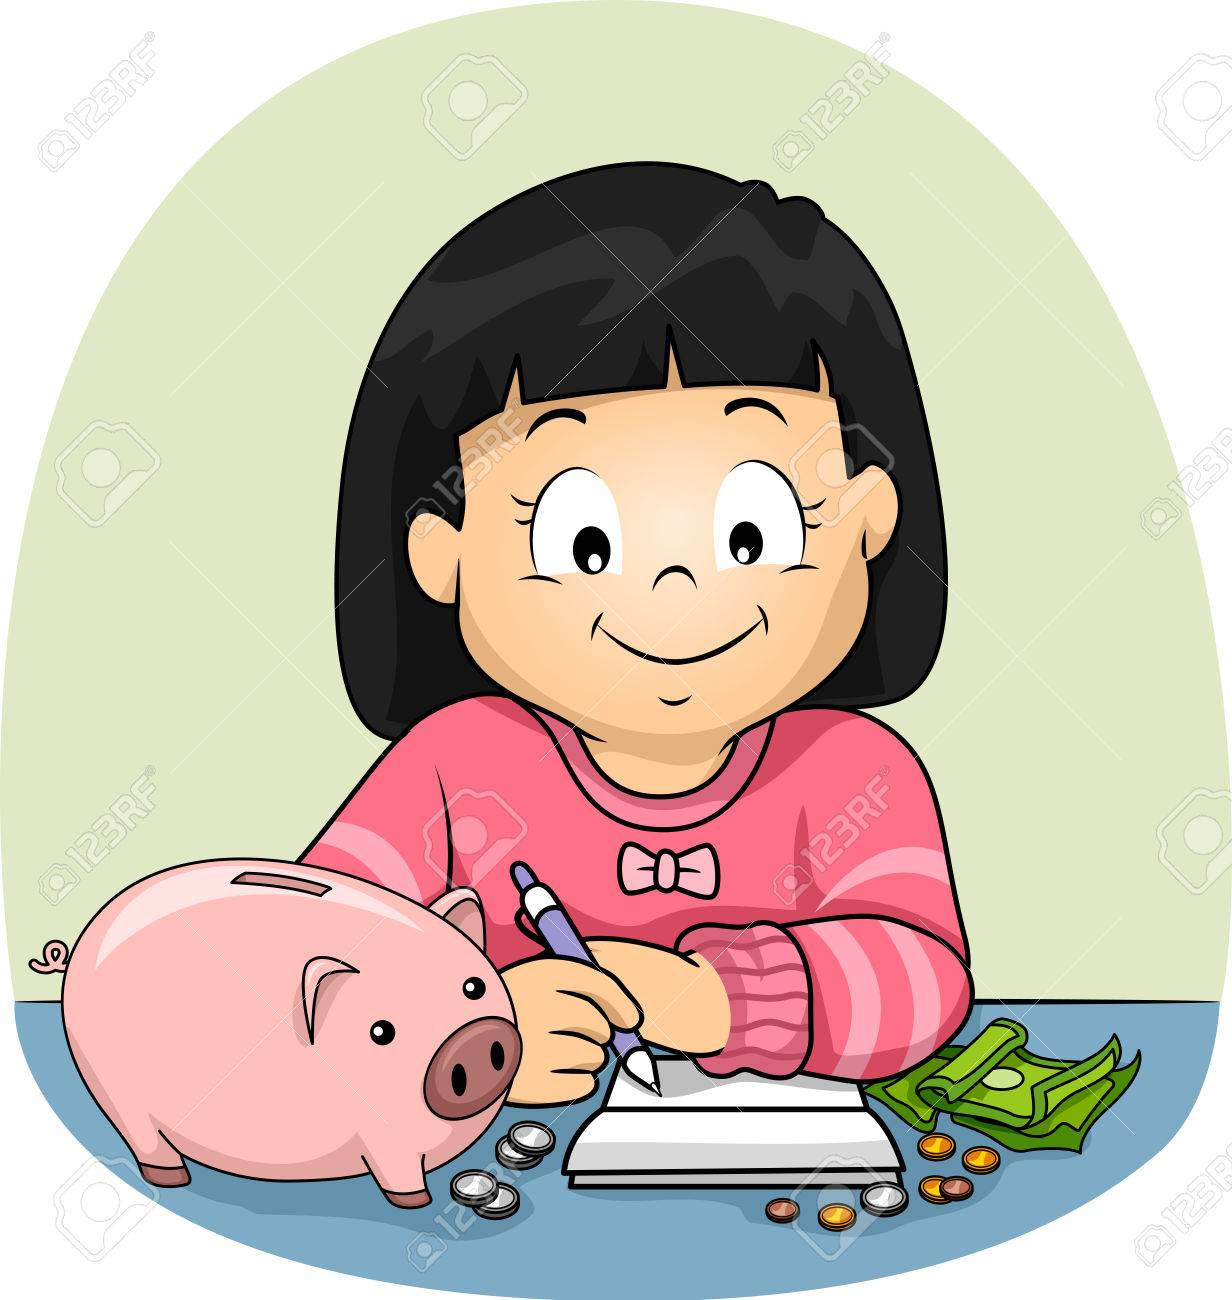 Illustration Of A Kid Girl Writing And Keeping Track Of Her Savings Stock Photo Picture And Royalty Free Image Image 86270765